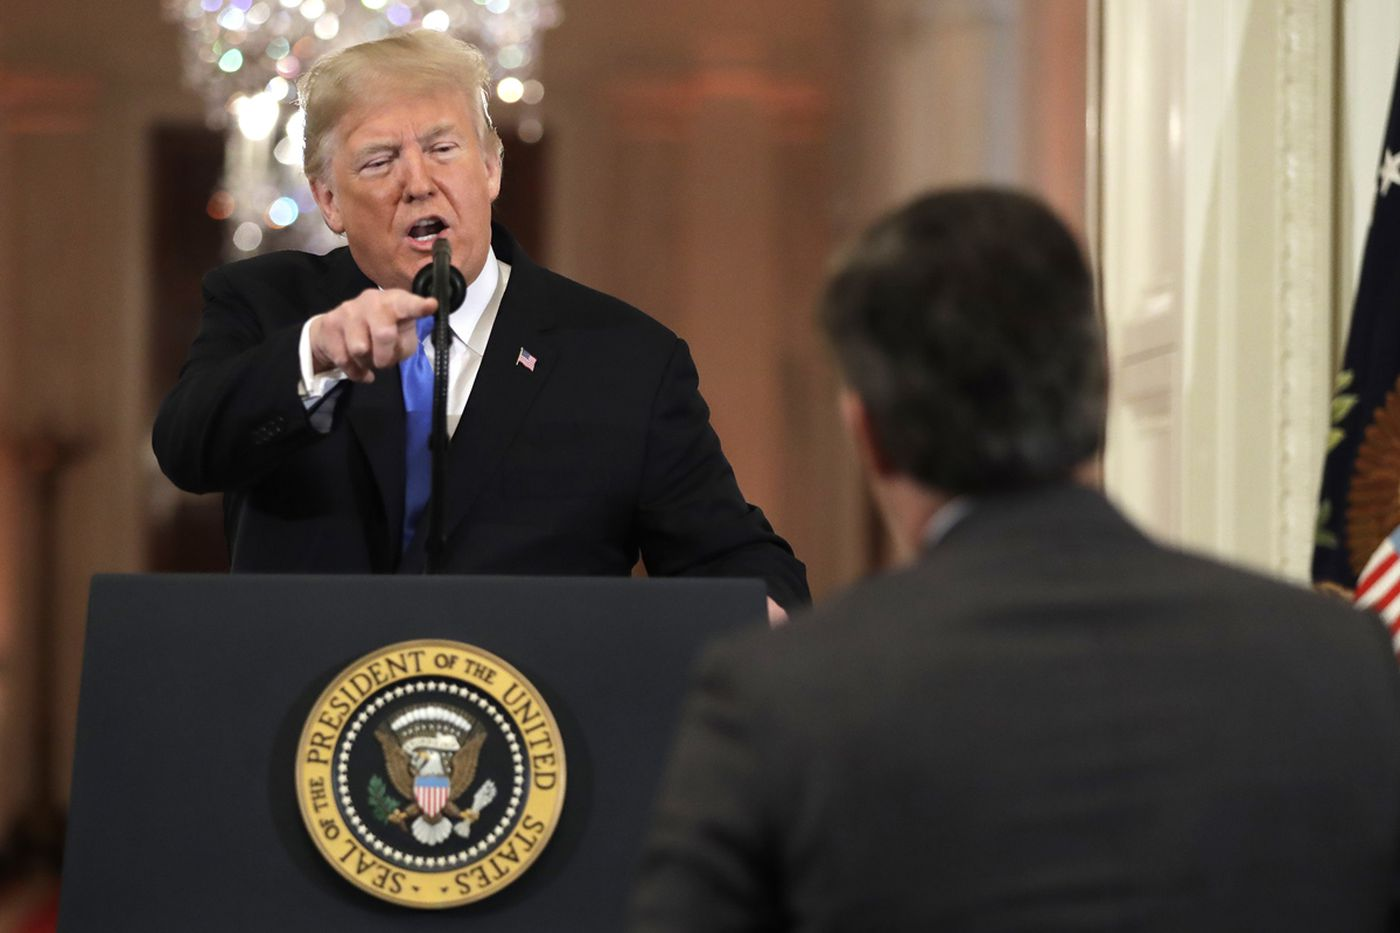 Trump Defends Sarah Sanders, Says Acosta's 'Very Unprofessional Man'